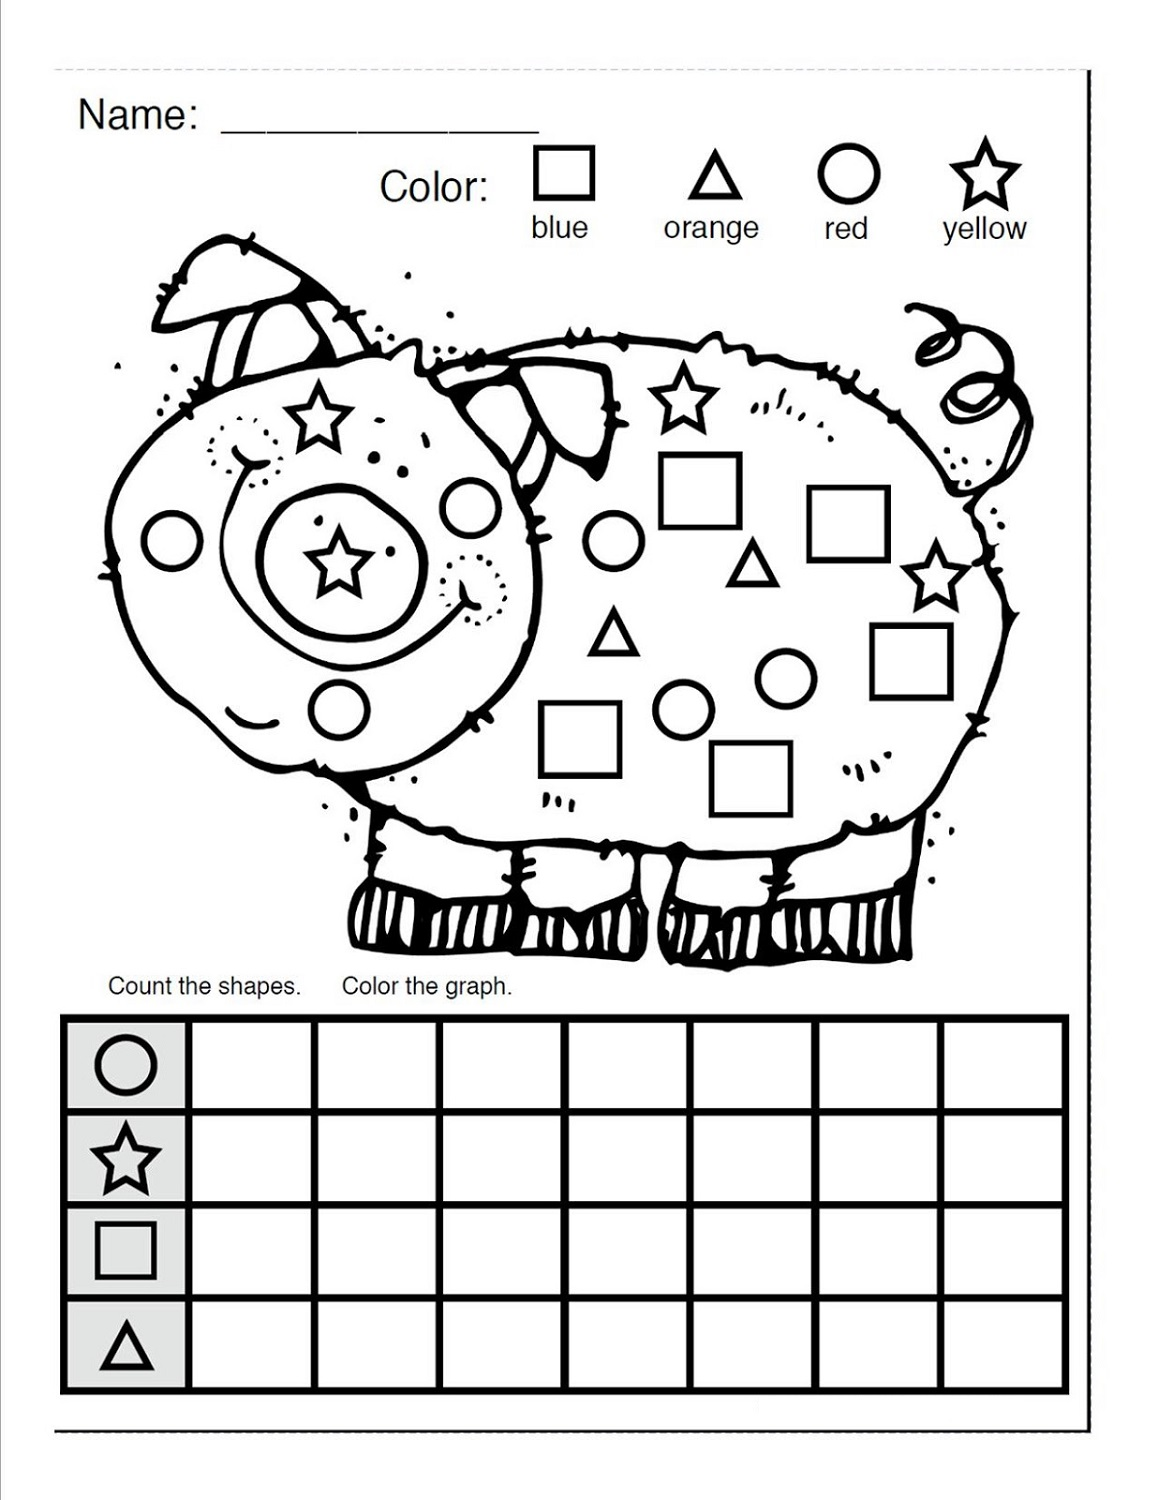 Worksheet On Shapes And Colours